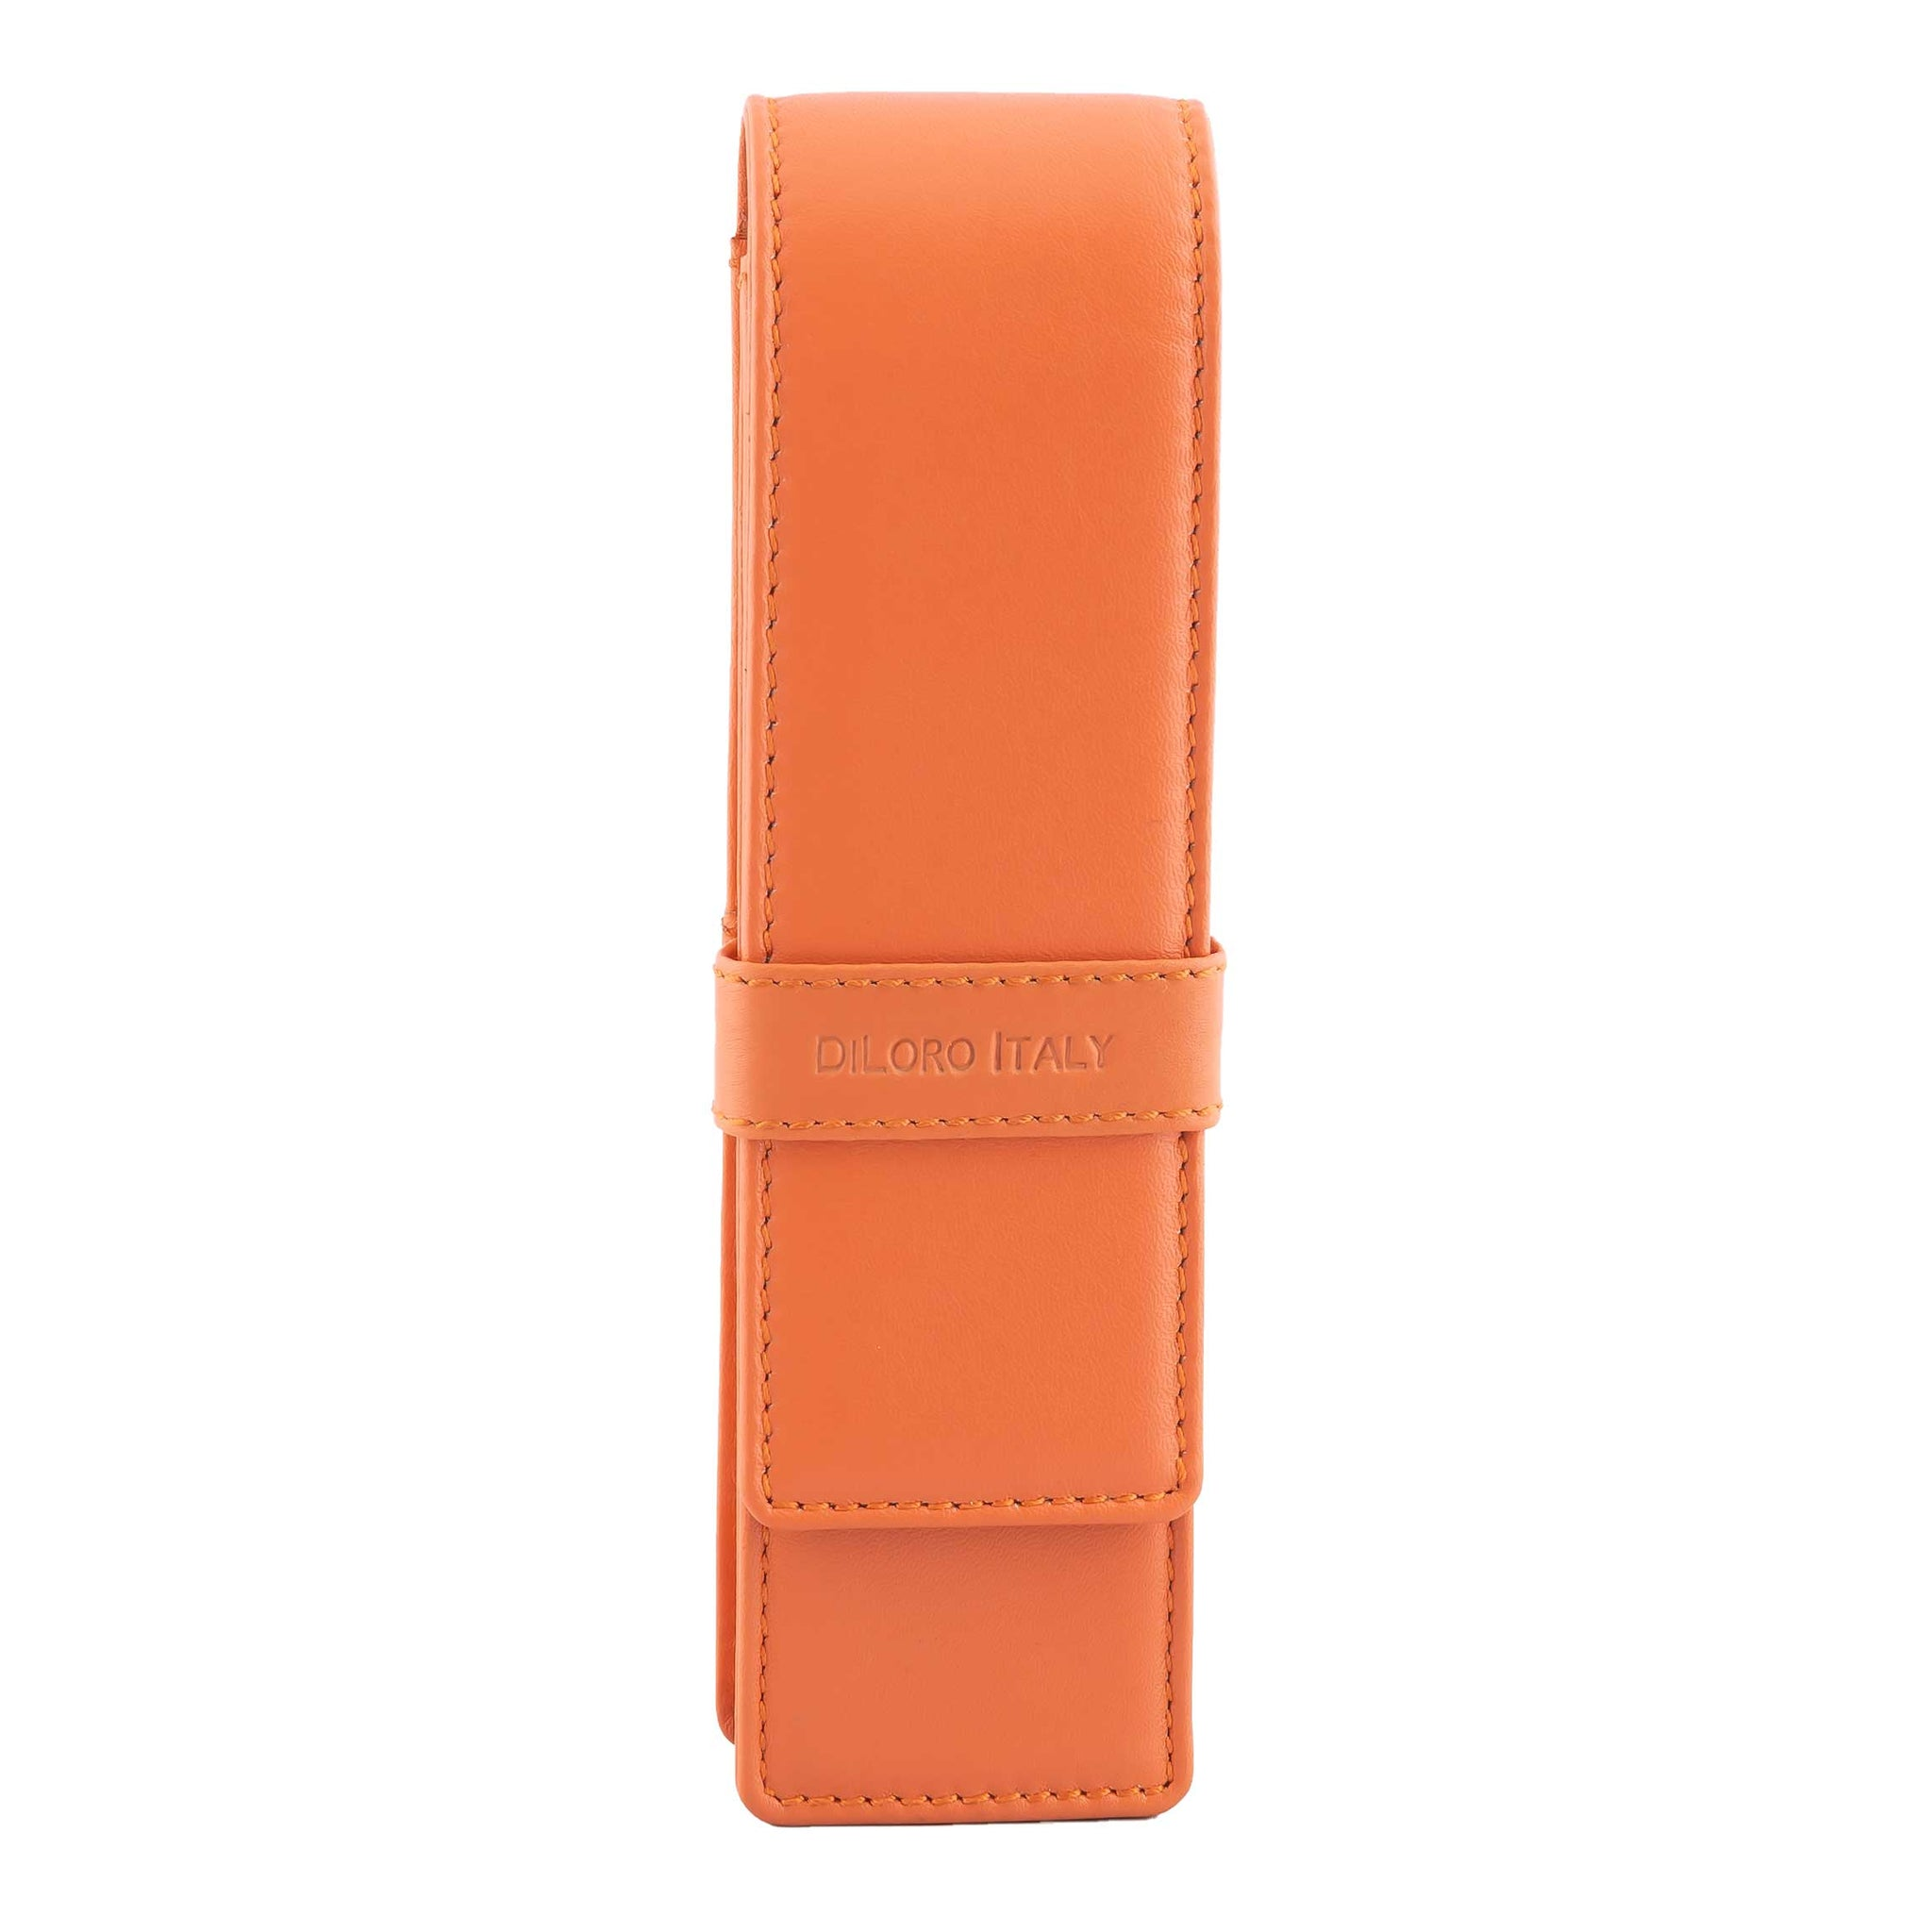 DiLoro Double Pen Case Holder in Top Quality, Full Grain Nappa Leather - Orange, Front